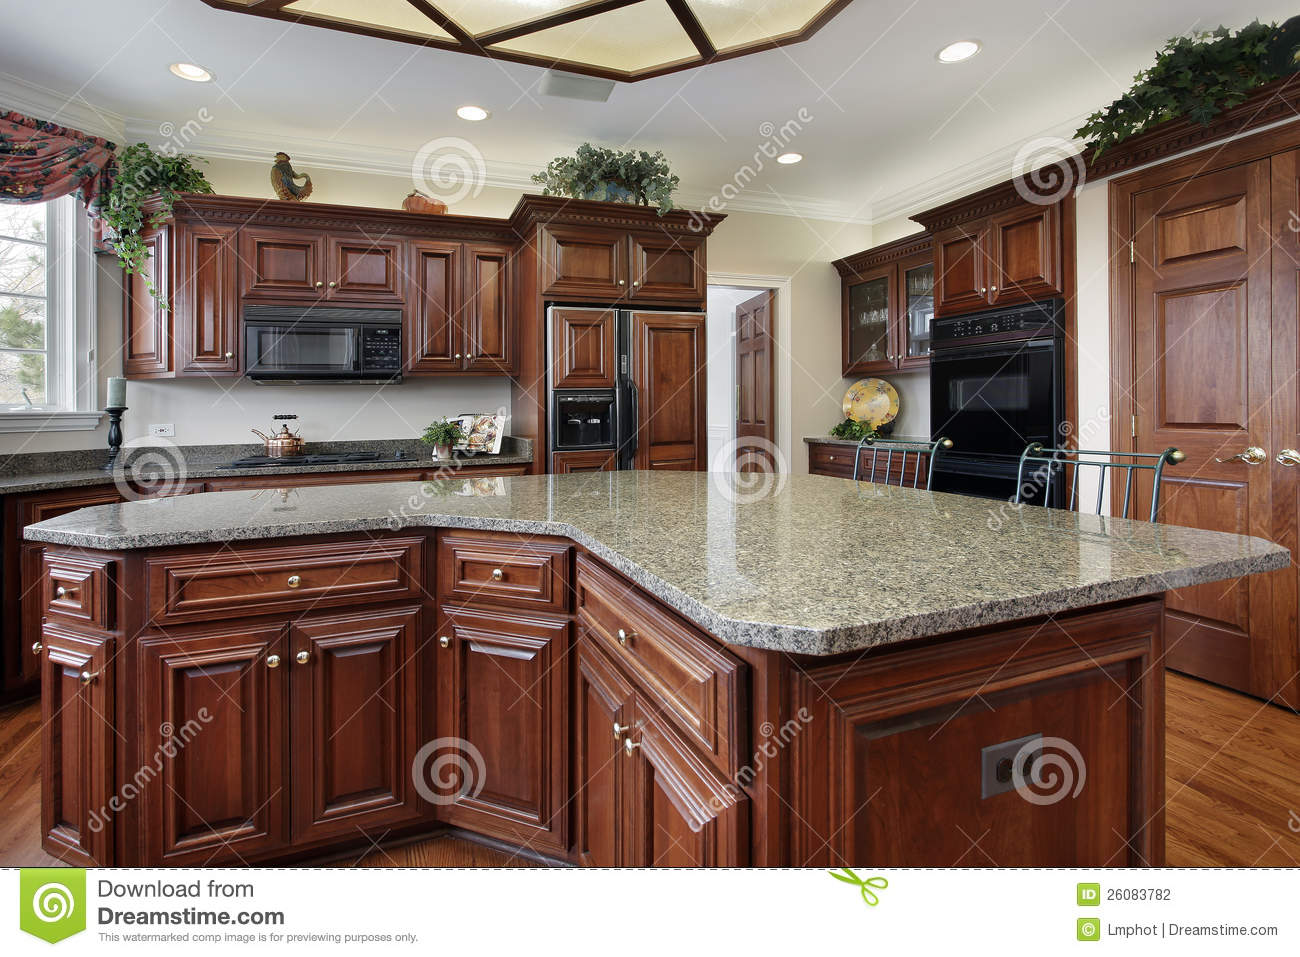 kitchen centre islands kitchen with large center island stock photo image 26083782 12988